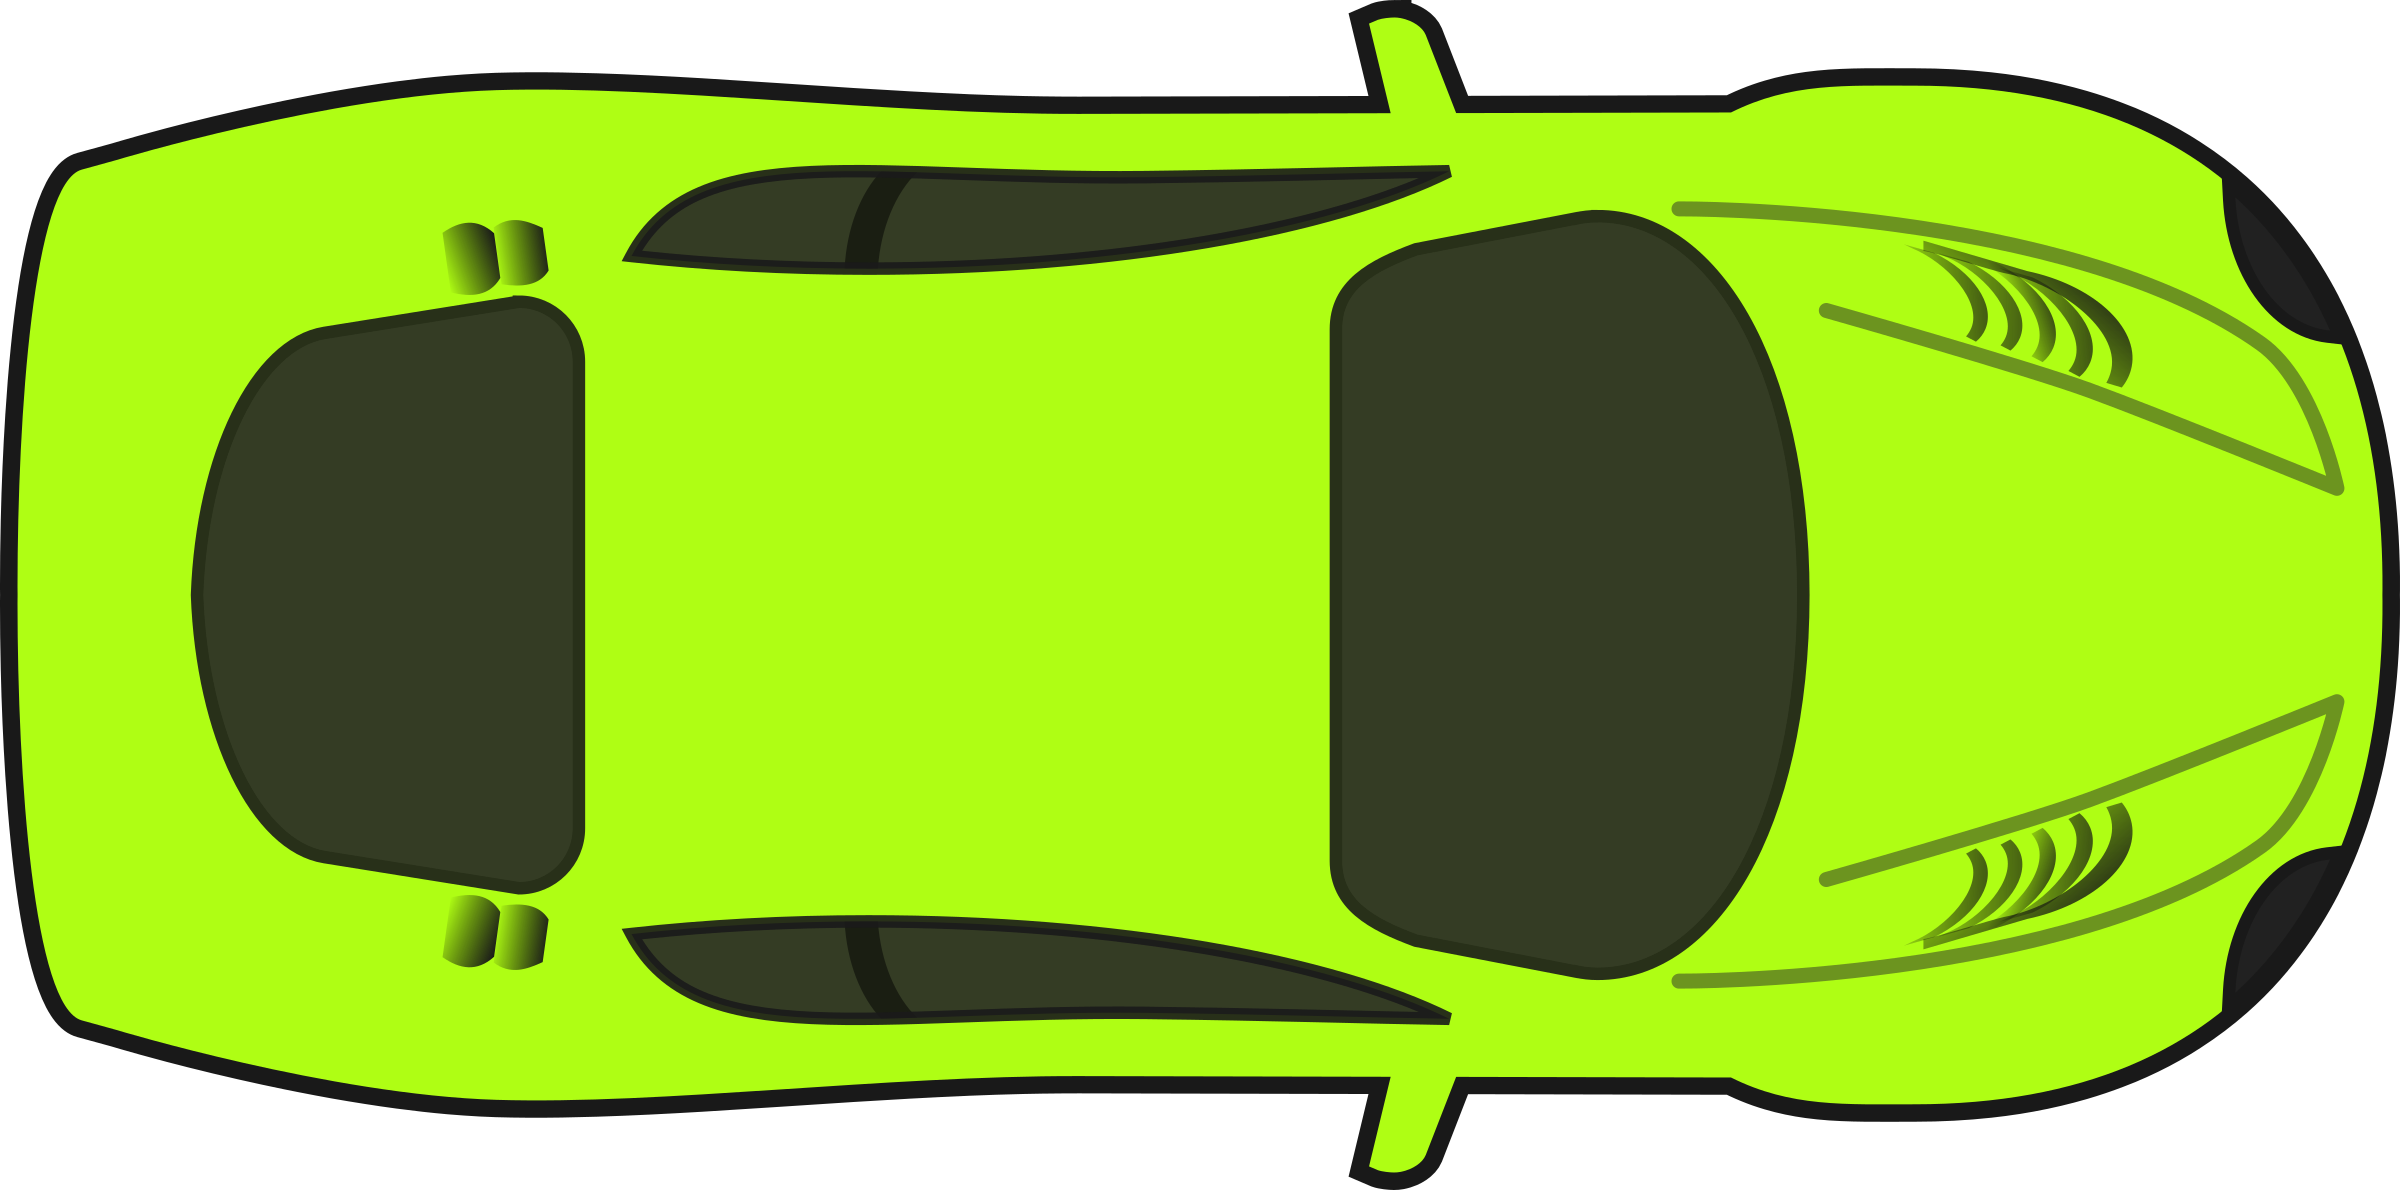 Bright racing car top. Clipart cars green